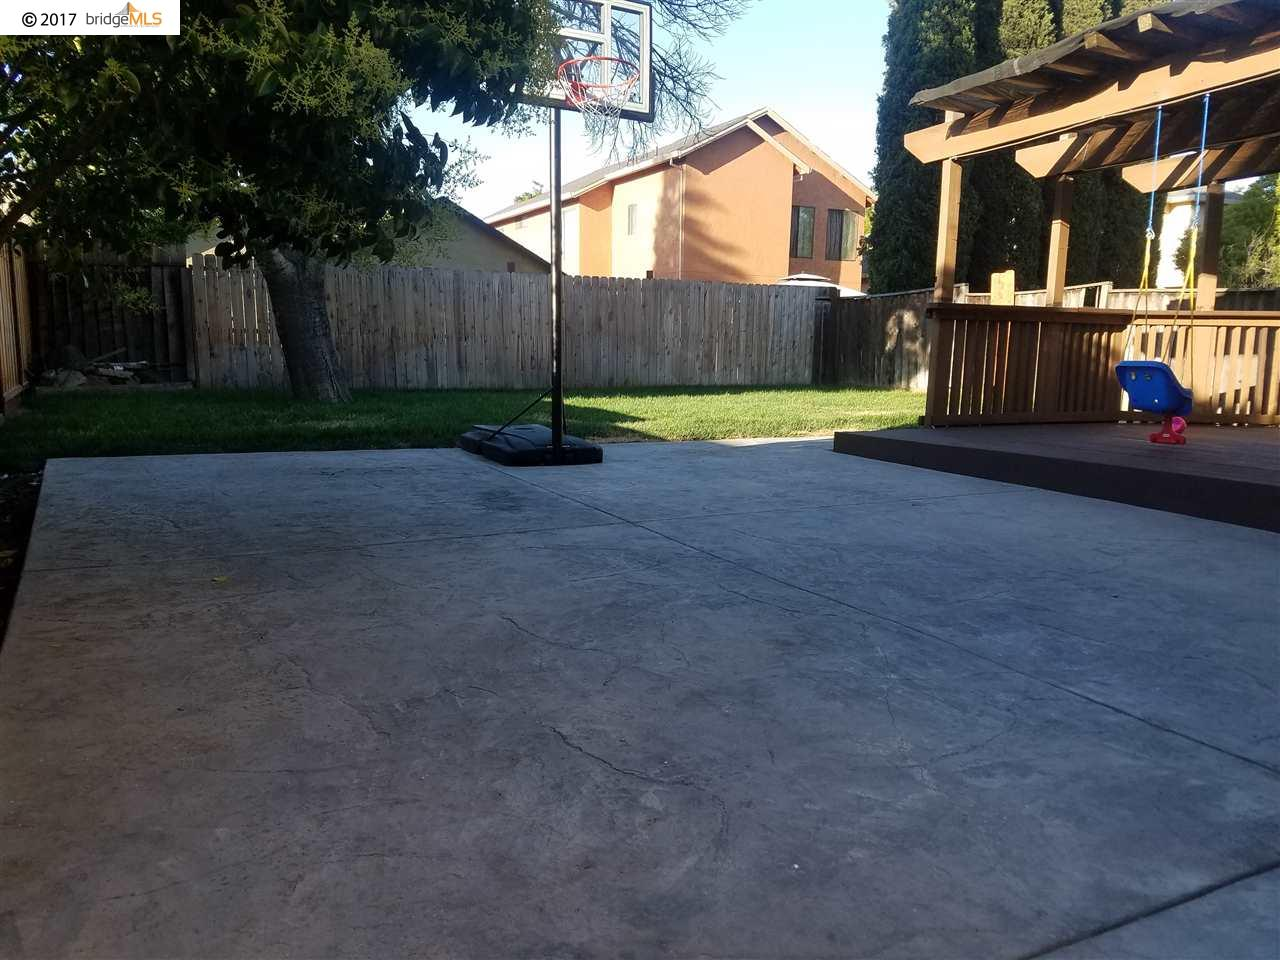 Additional photo for property listing at 920 Buckskin Ter  Brentwood, California 94513 United States